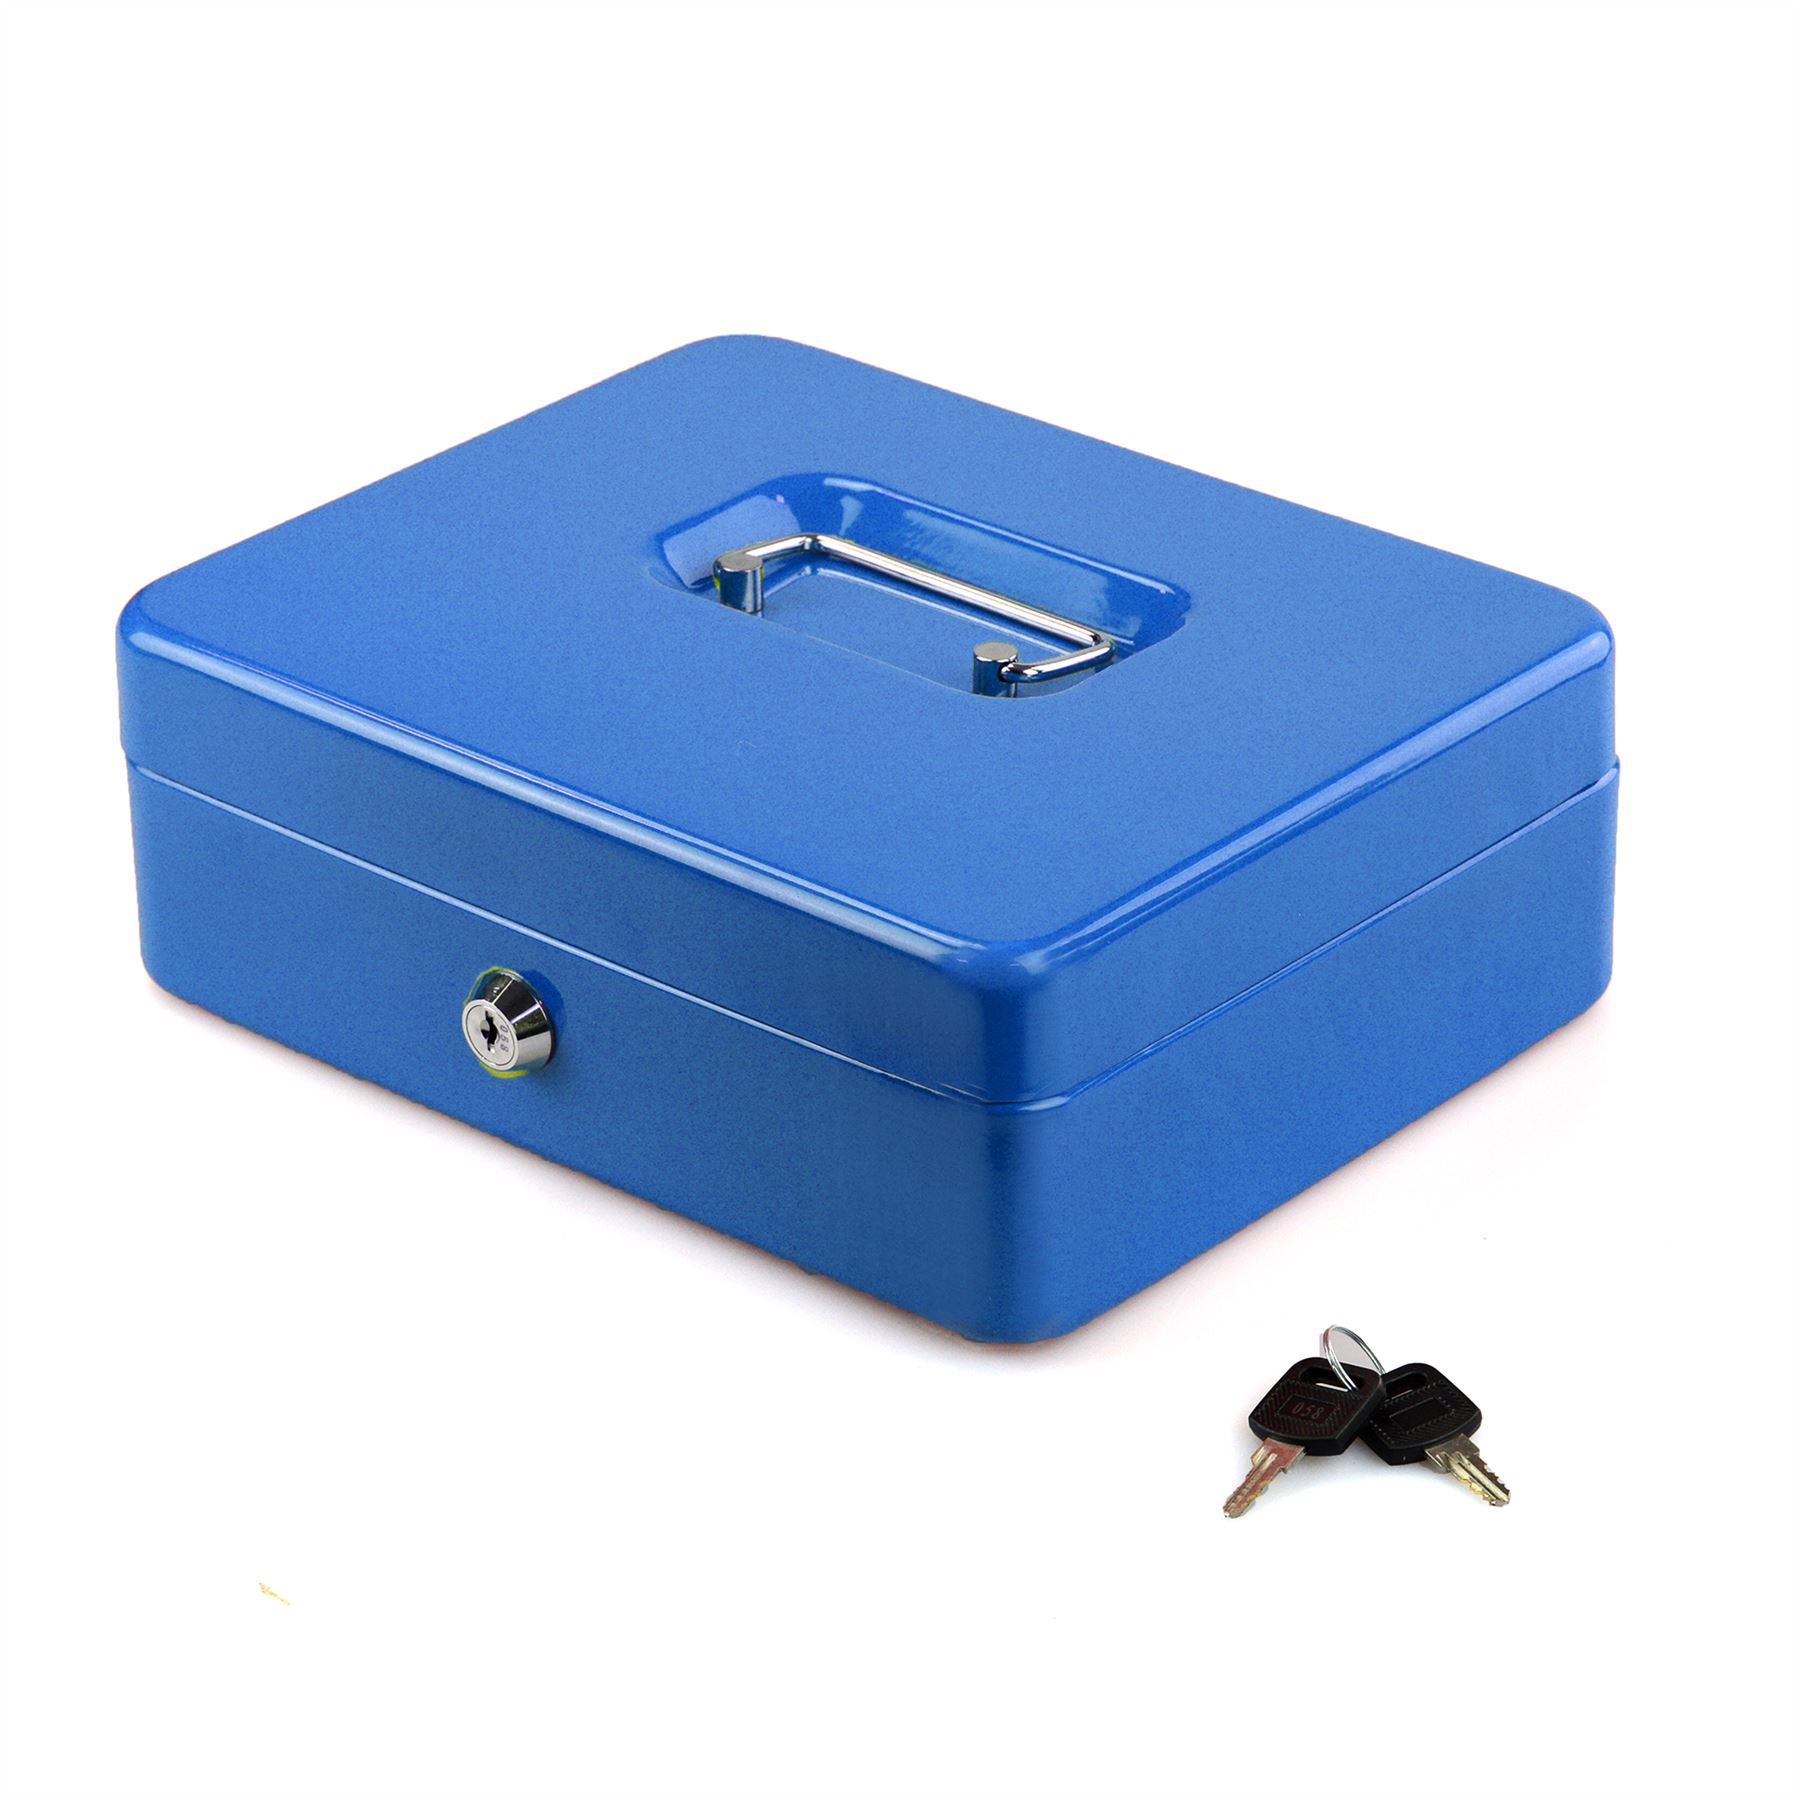 Petty-Cash-Safety-Deposit-Box-Metal-Security-Steel-Money-Bank-Coin-Tray-holder thumbnail 9